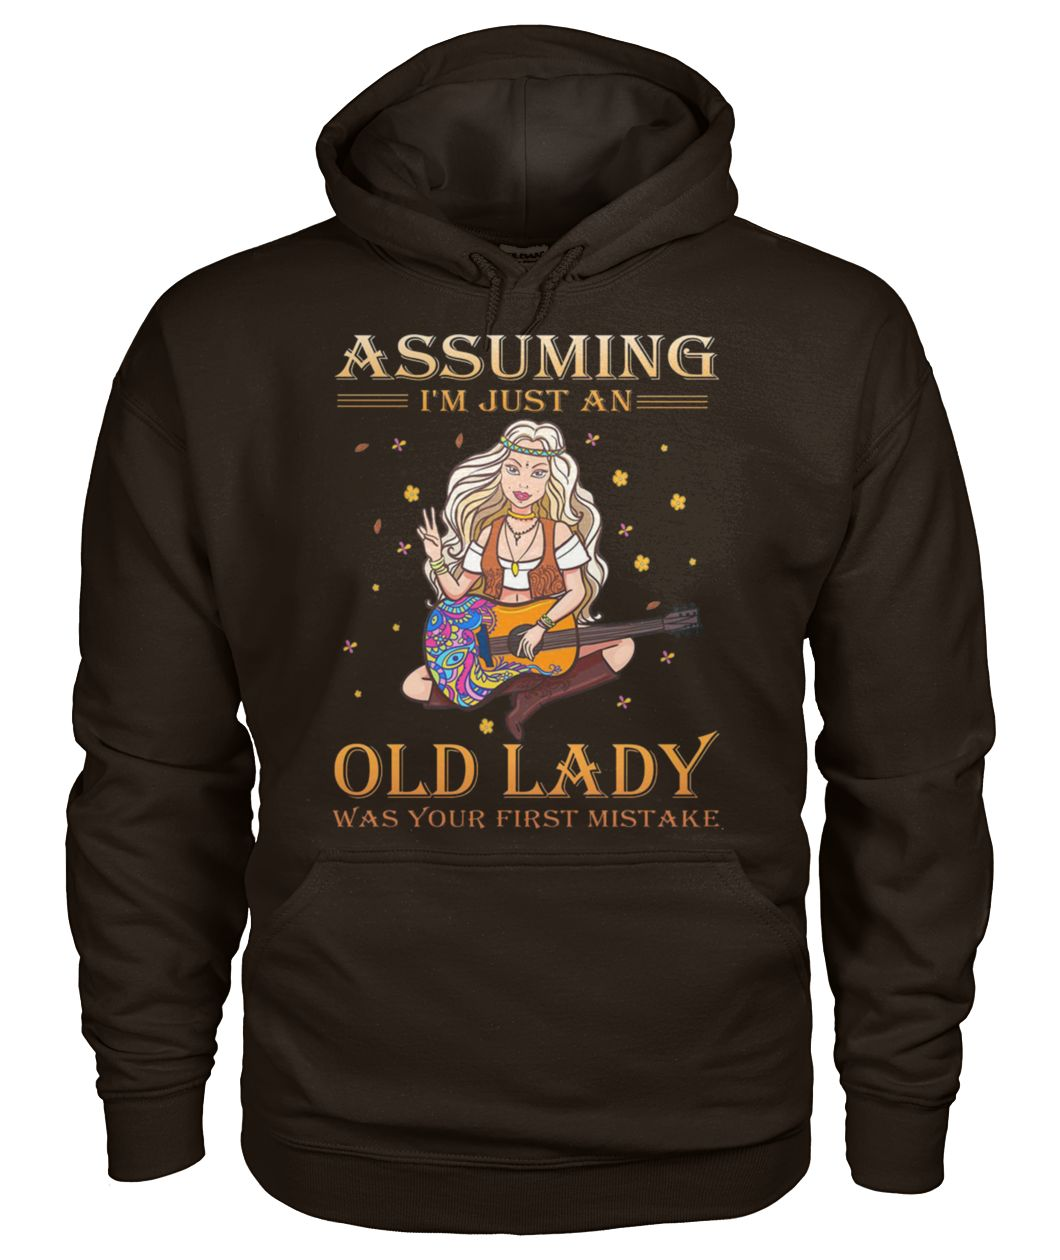 Hippie style assuming I'm just an old lady was your first mistake hoodie